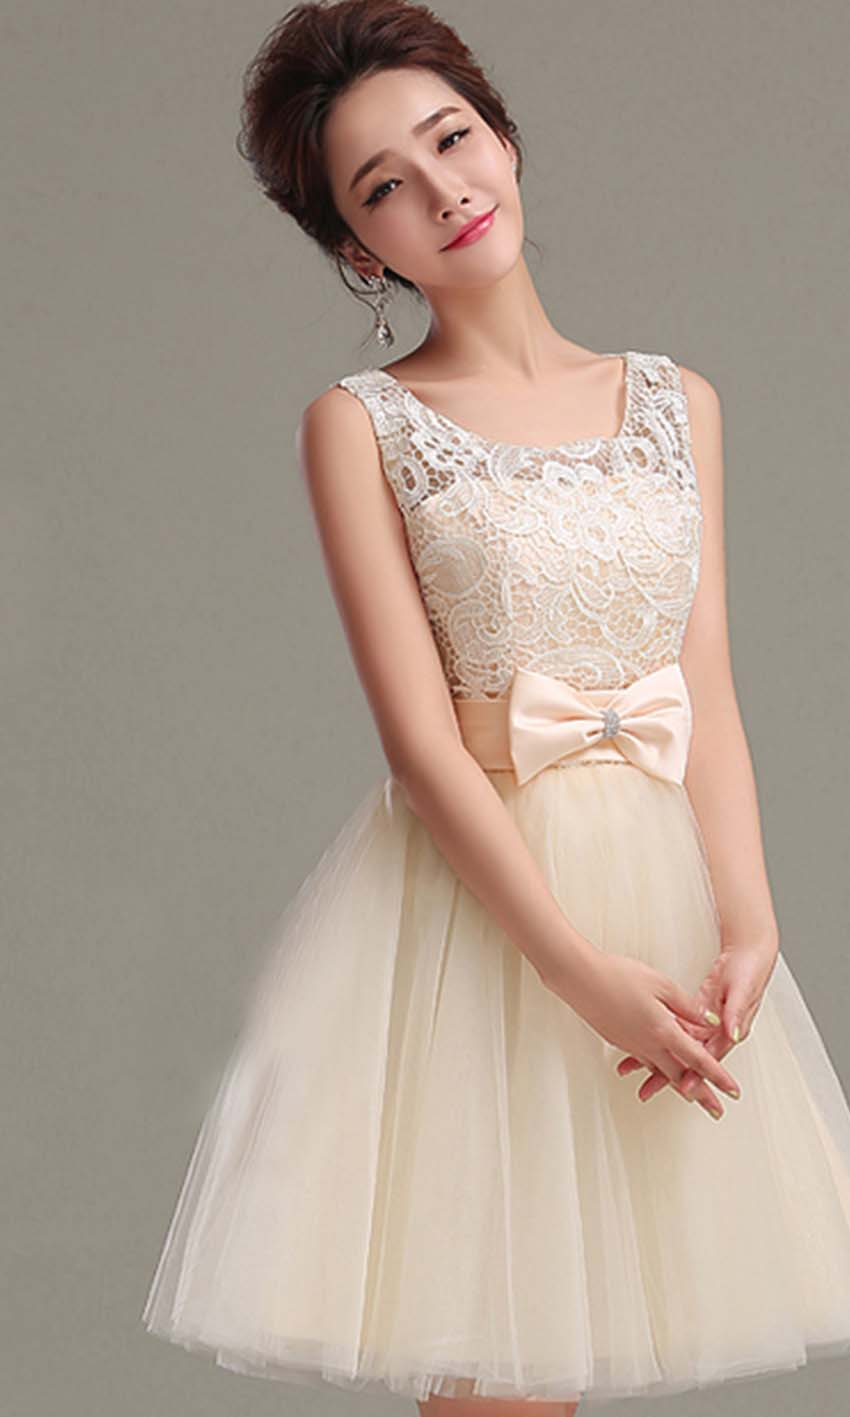 Cute beige retro bow knot short prom gown ksp348 ksp348 8400 cute beige retro bow knot short prom gown ksp348 ksp348 8400 cheap prom dress uk wedding bridesmaid dresses prom 2016 dresses look for cheap ombrellifo Choice Image